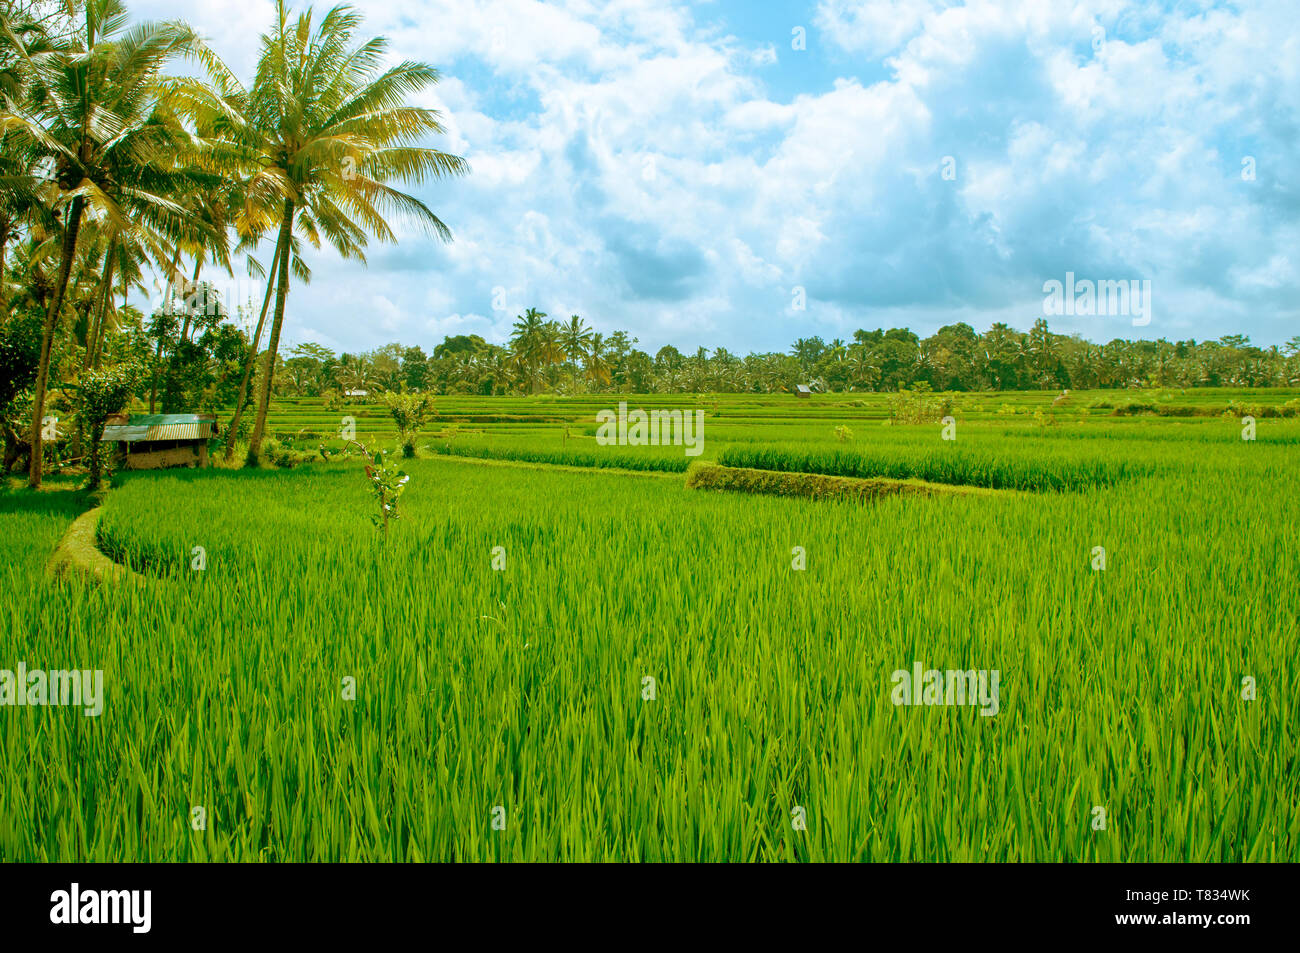 Paddy rice field in early stage at Bali, Indonesia. Coconut tree at background. - Stock Image